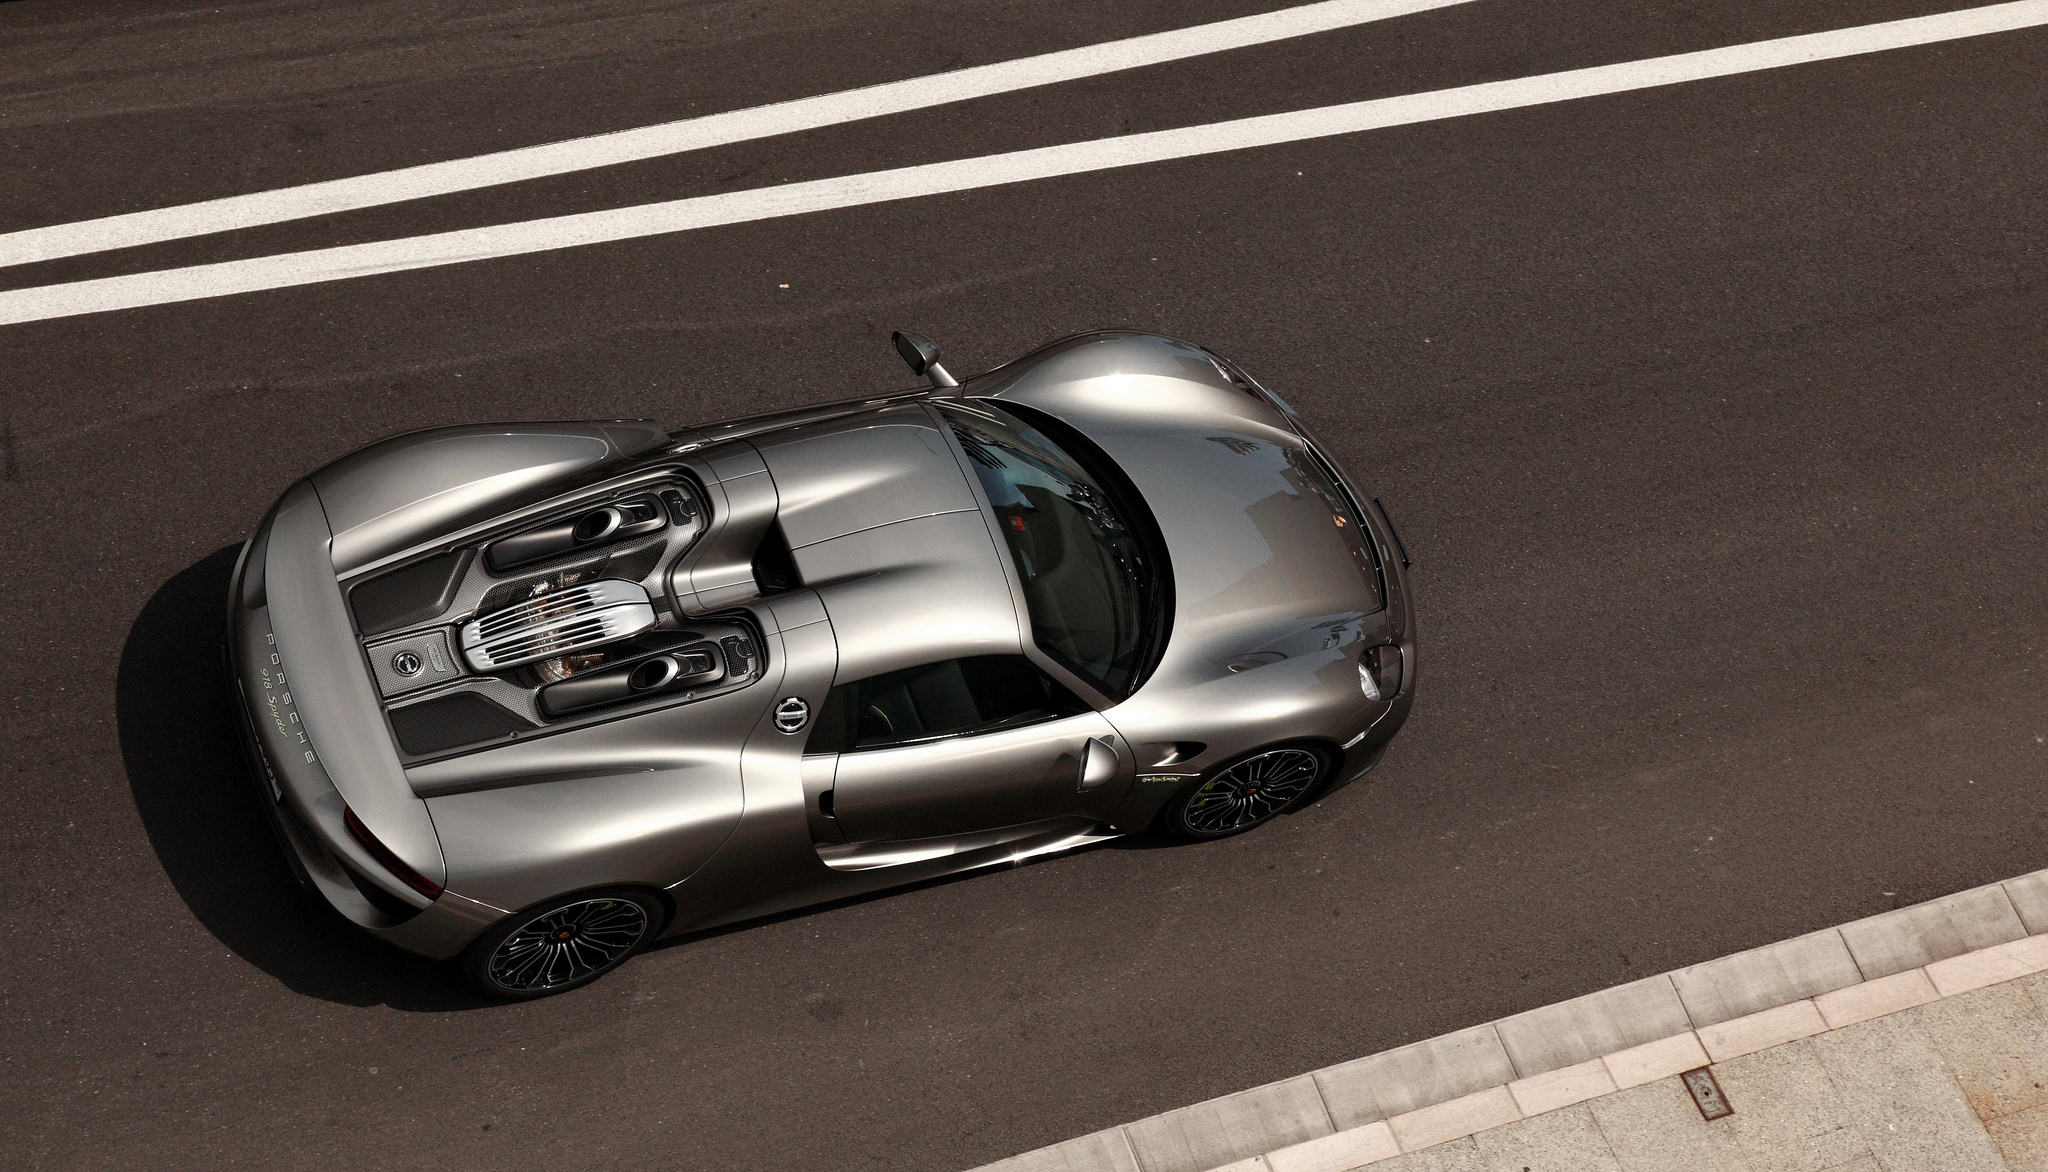 spyder from above 2015 porsche 918 spyder elevated view. Black Bedroom Furniture Sets. Home Design Ideas